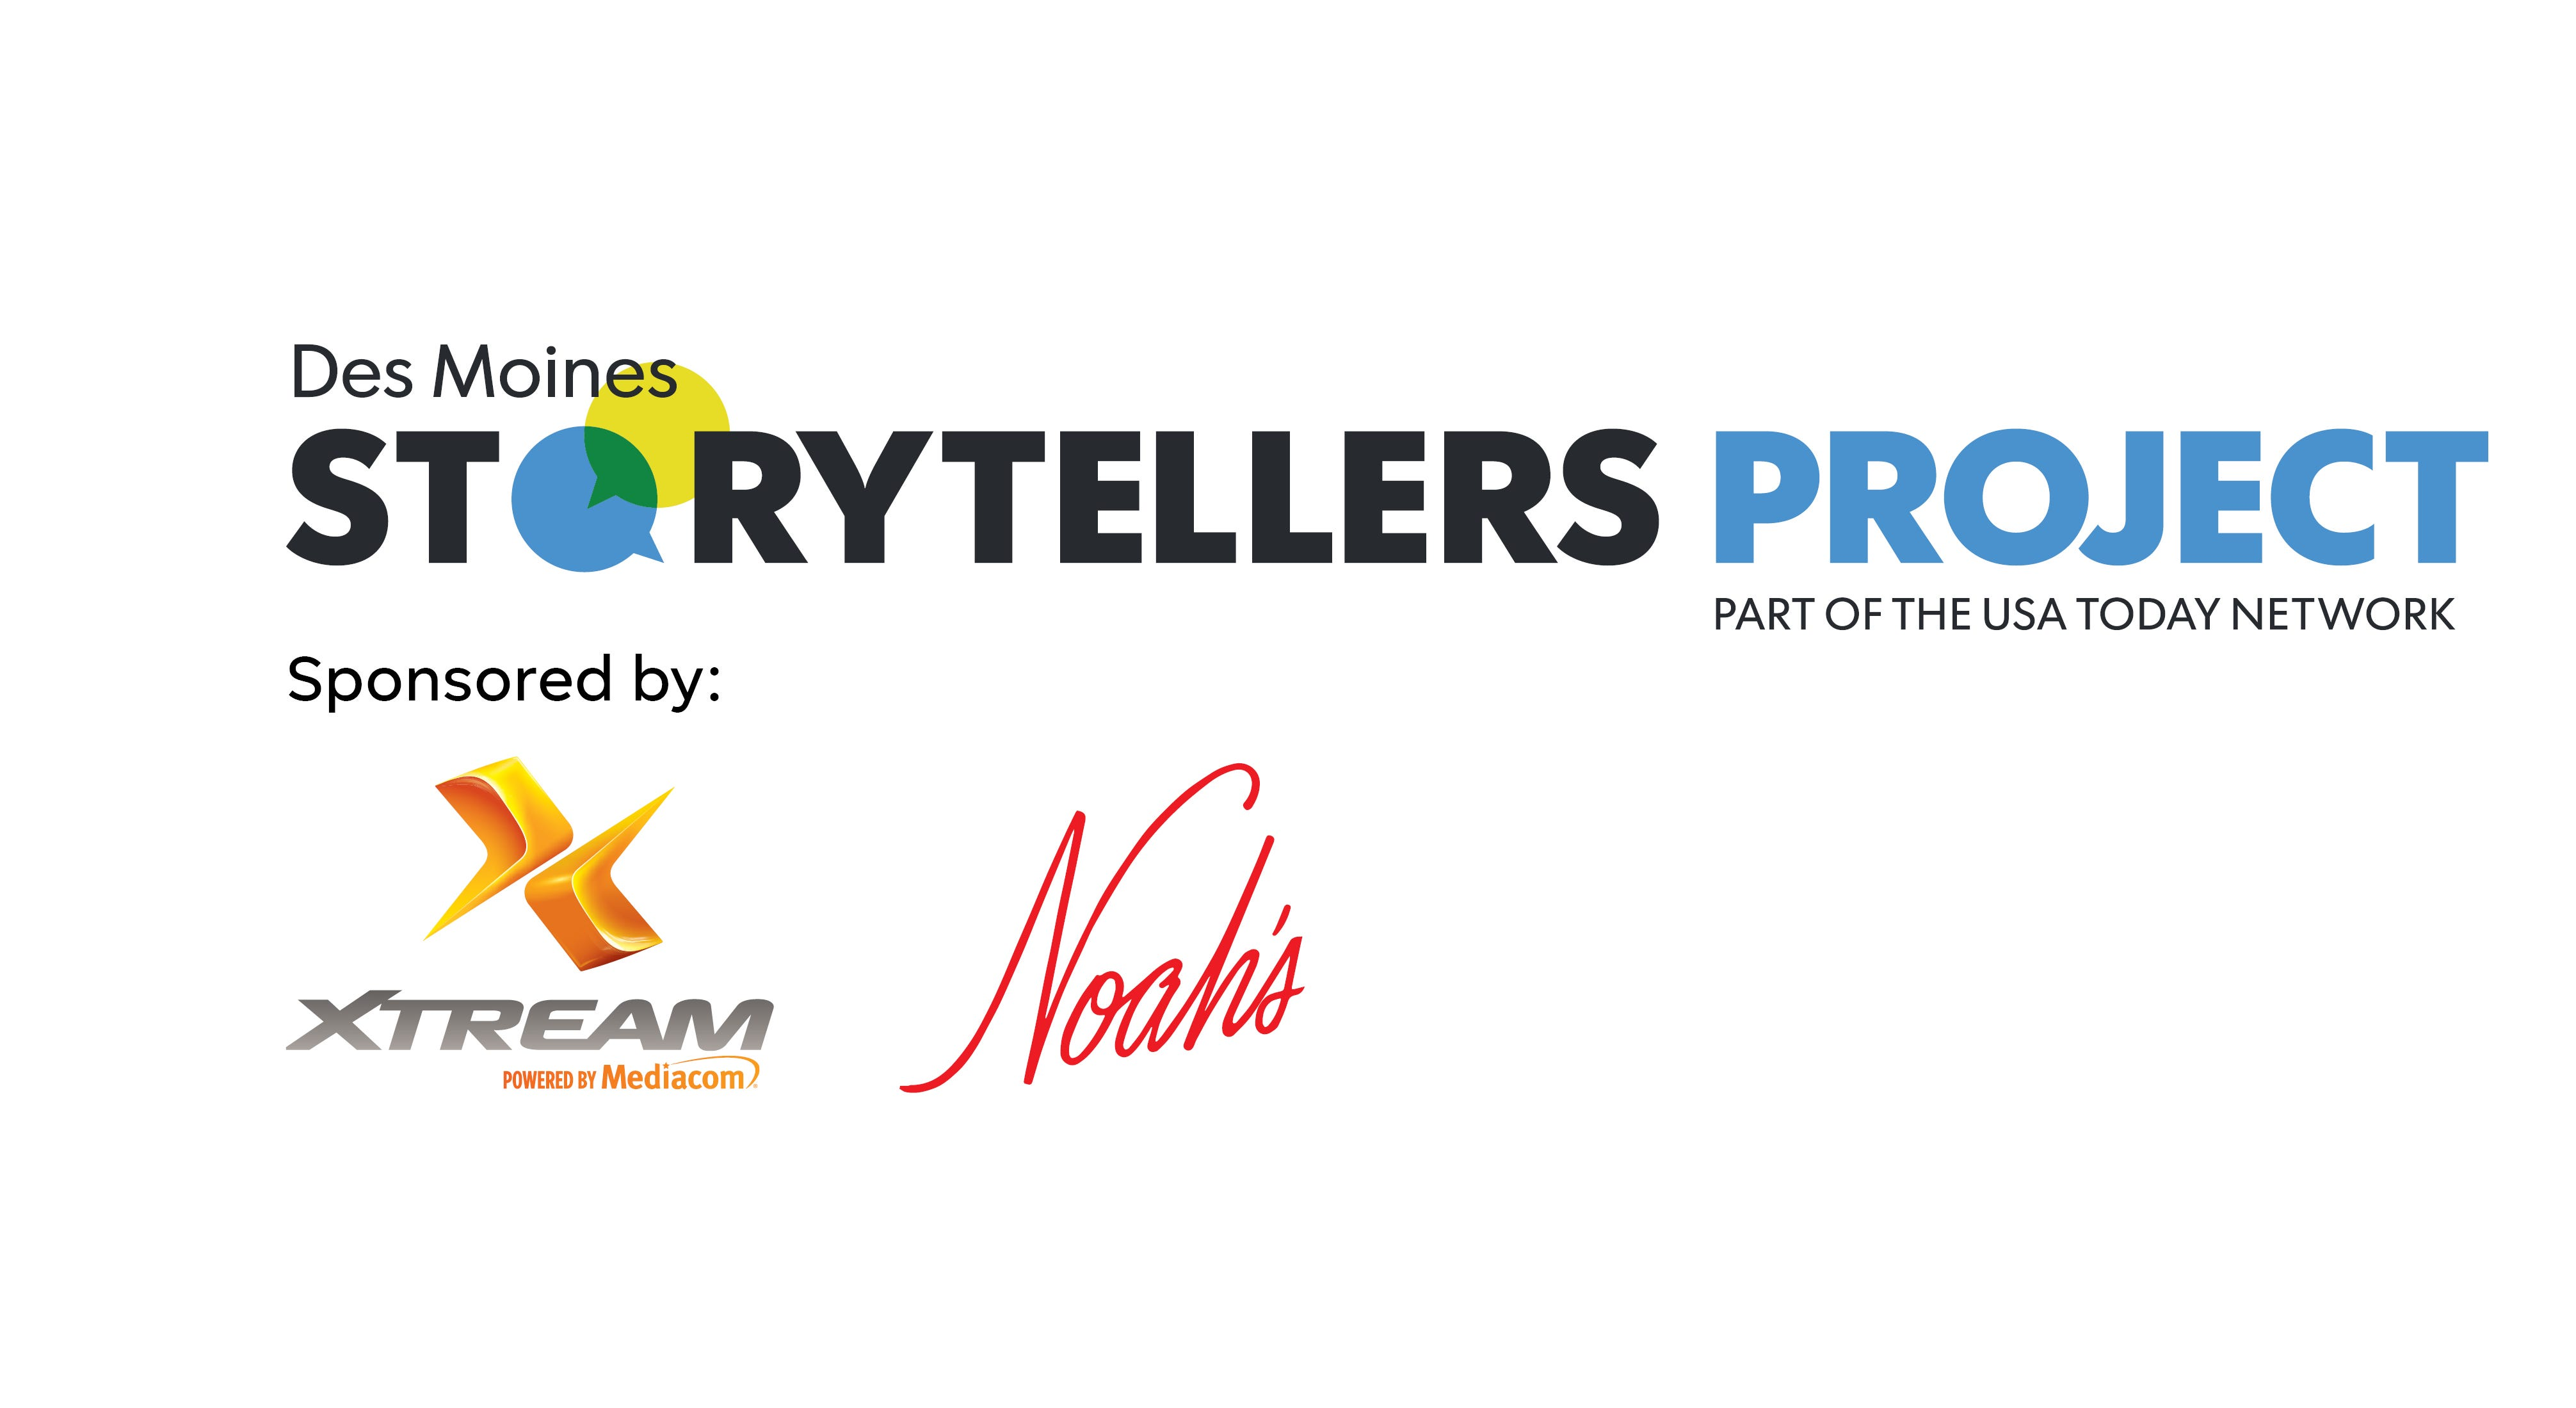 The Des Moines Storytellers Project is sponsored by Xtreme, powered by Mediacom, and Noah's Ark.